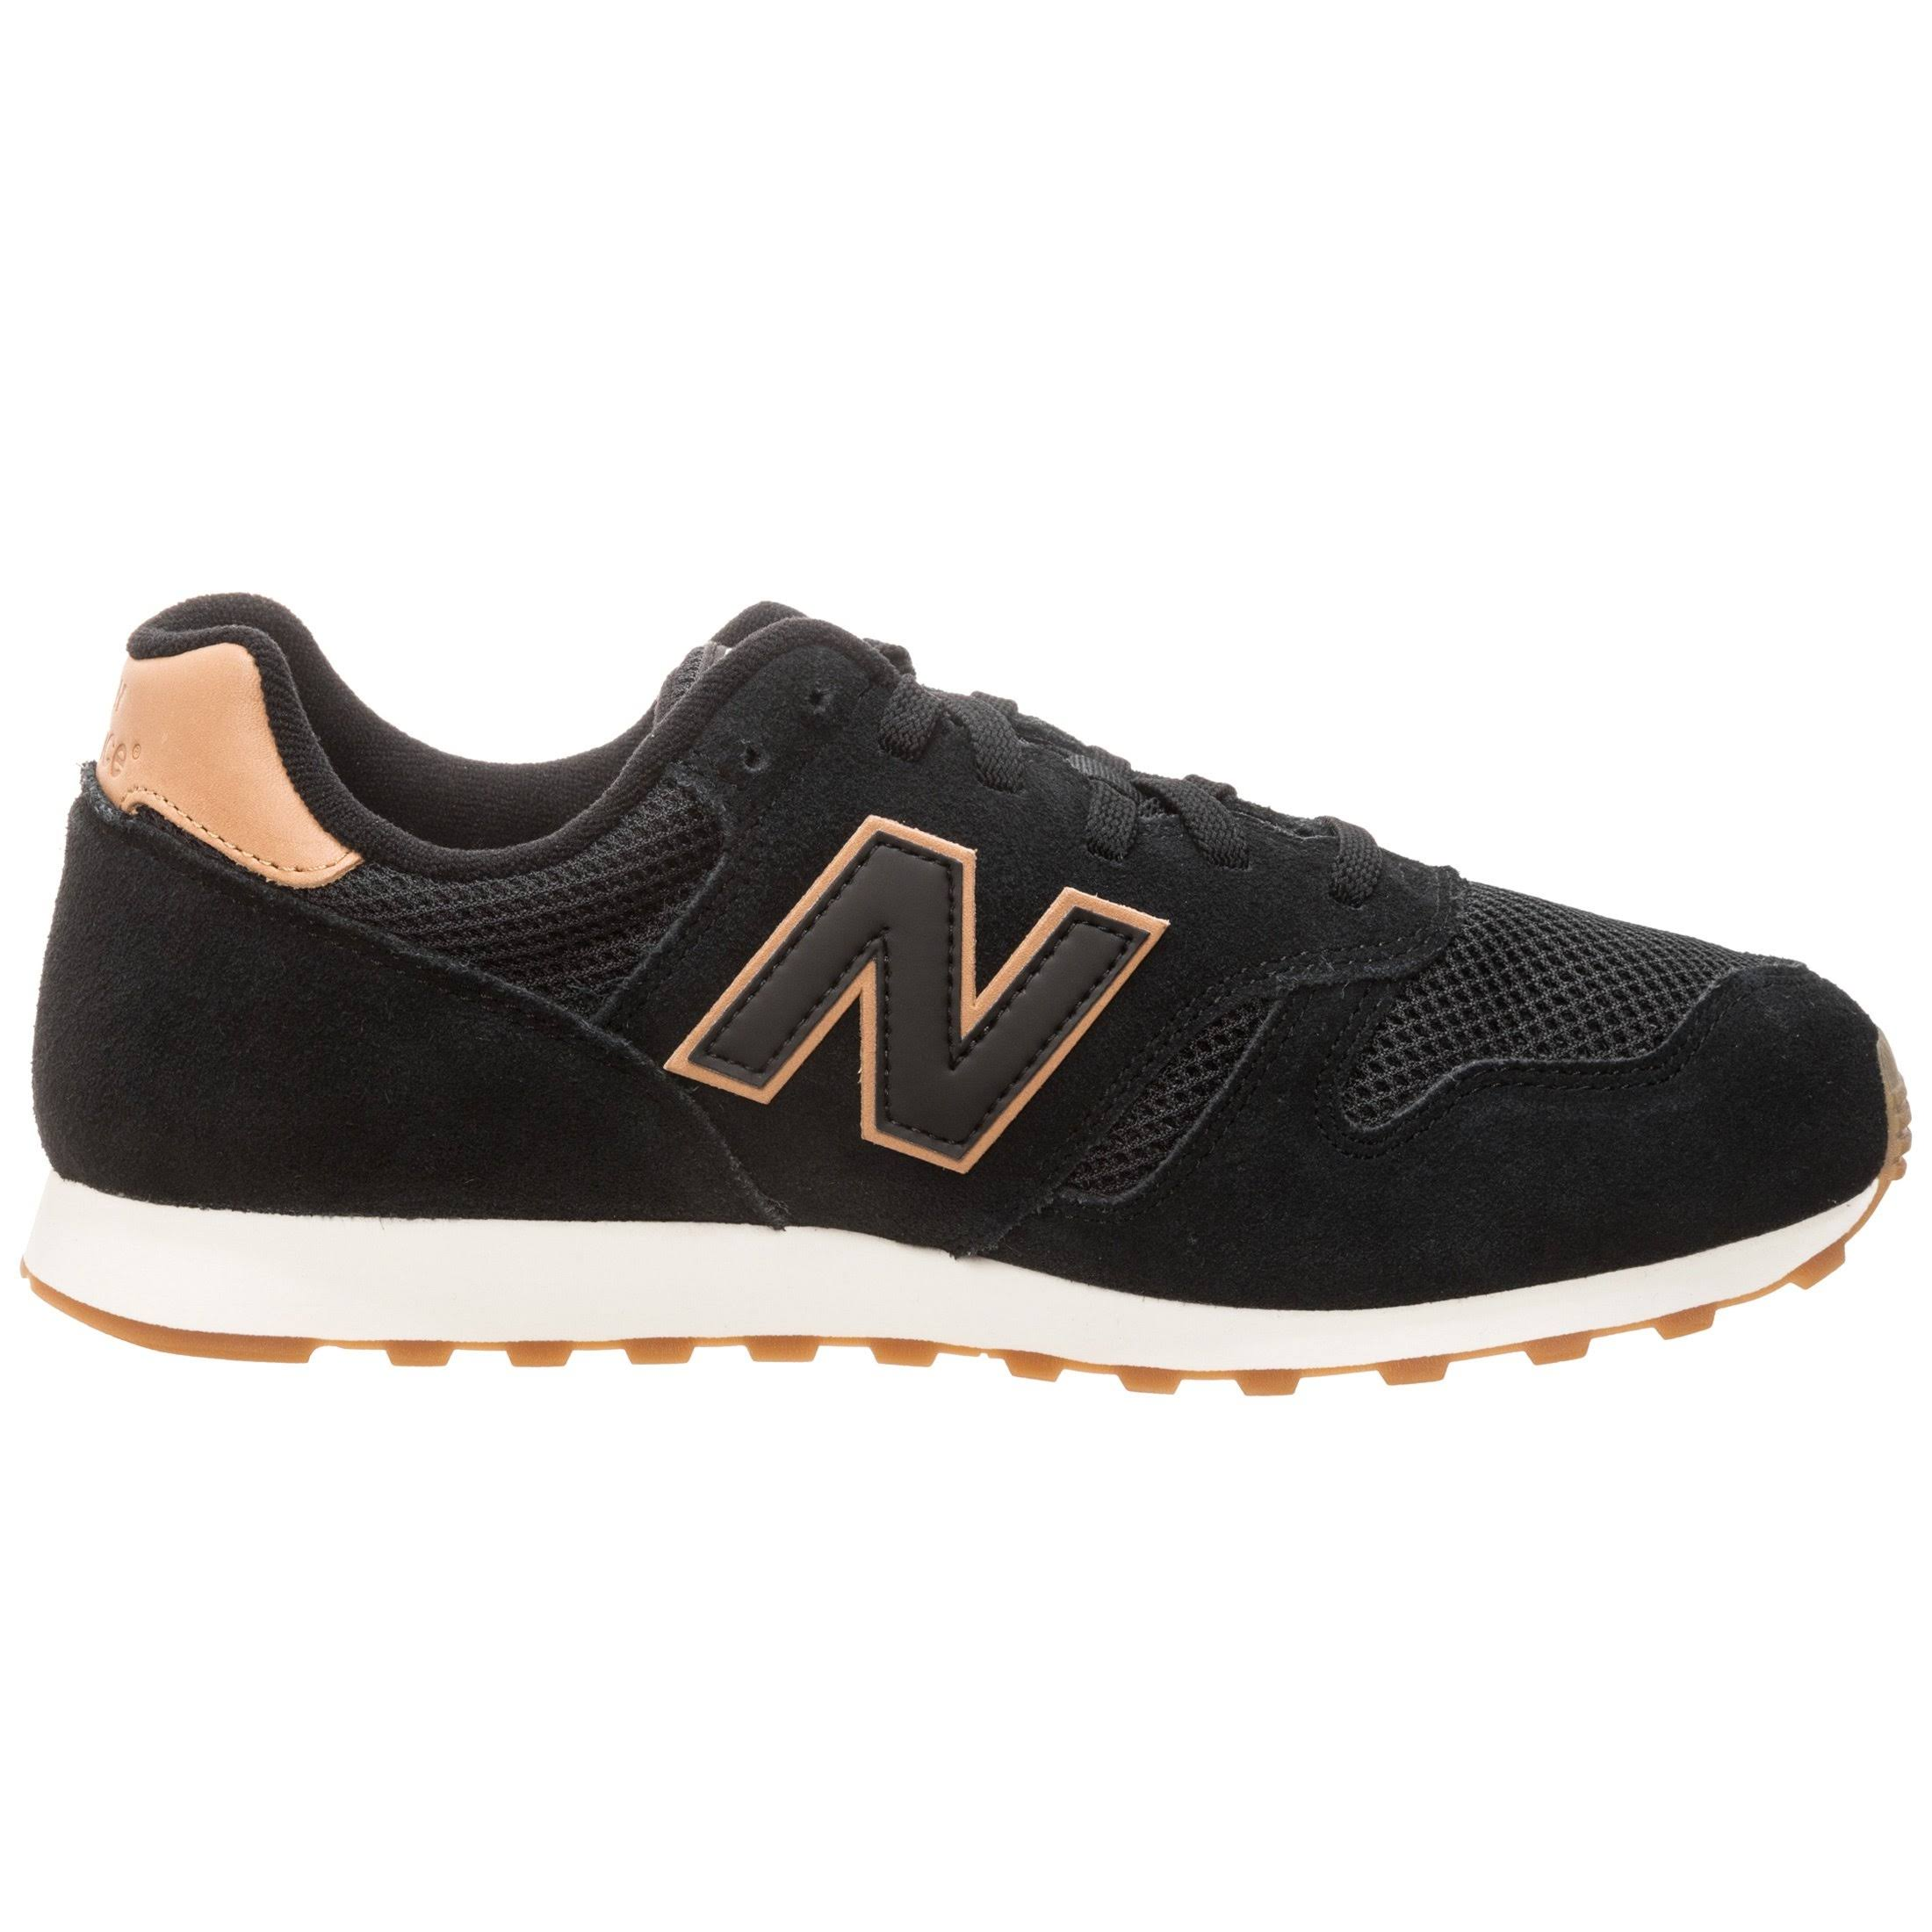 New New SneakersuomoMarroneNero Balance New Ml373 Low SneakersuomoMarroneNero Balance Low Balance Ml373 Ml373 Low hQdtrxsCB